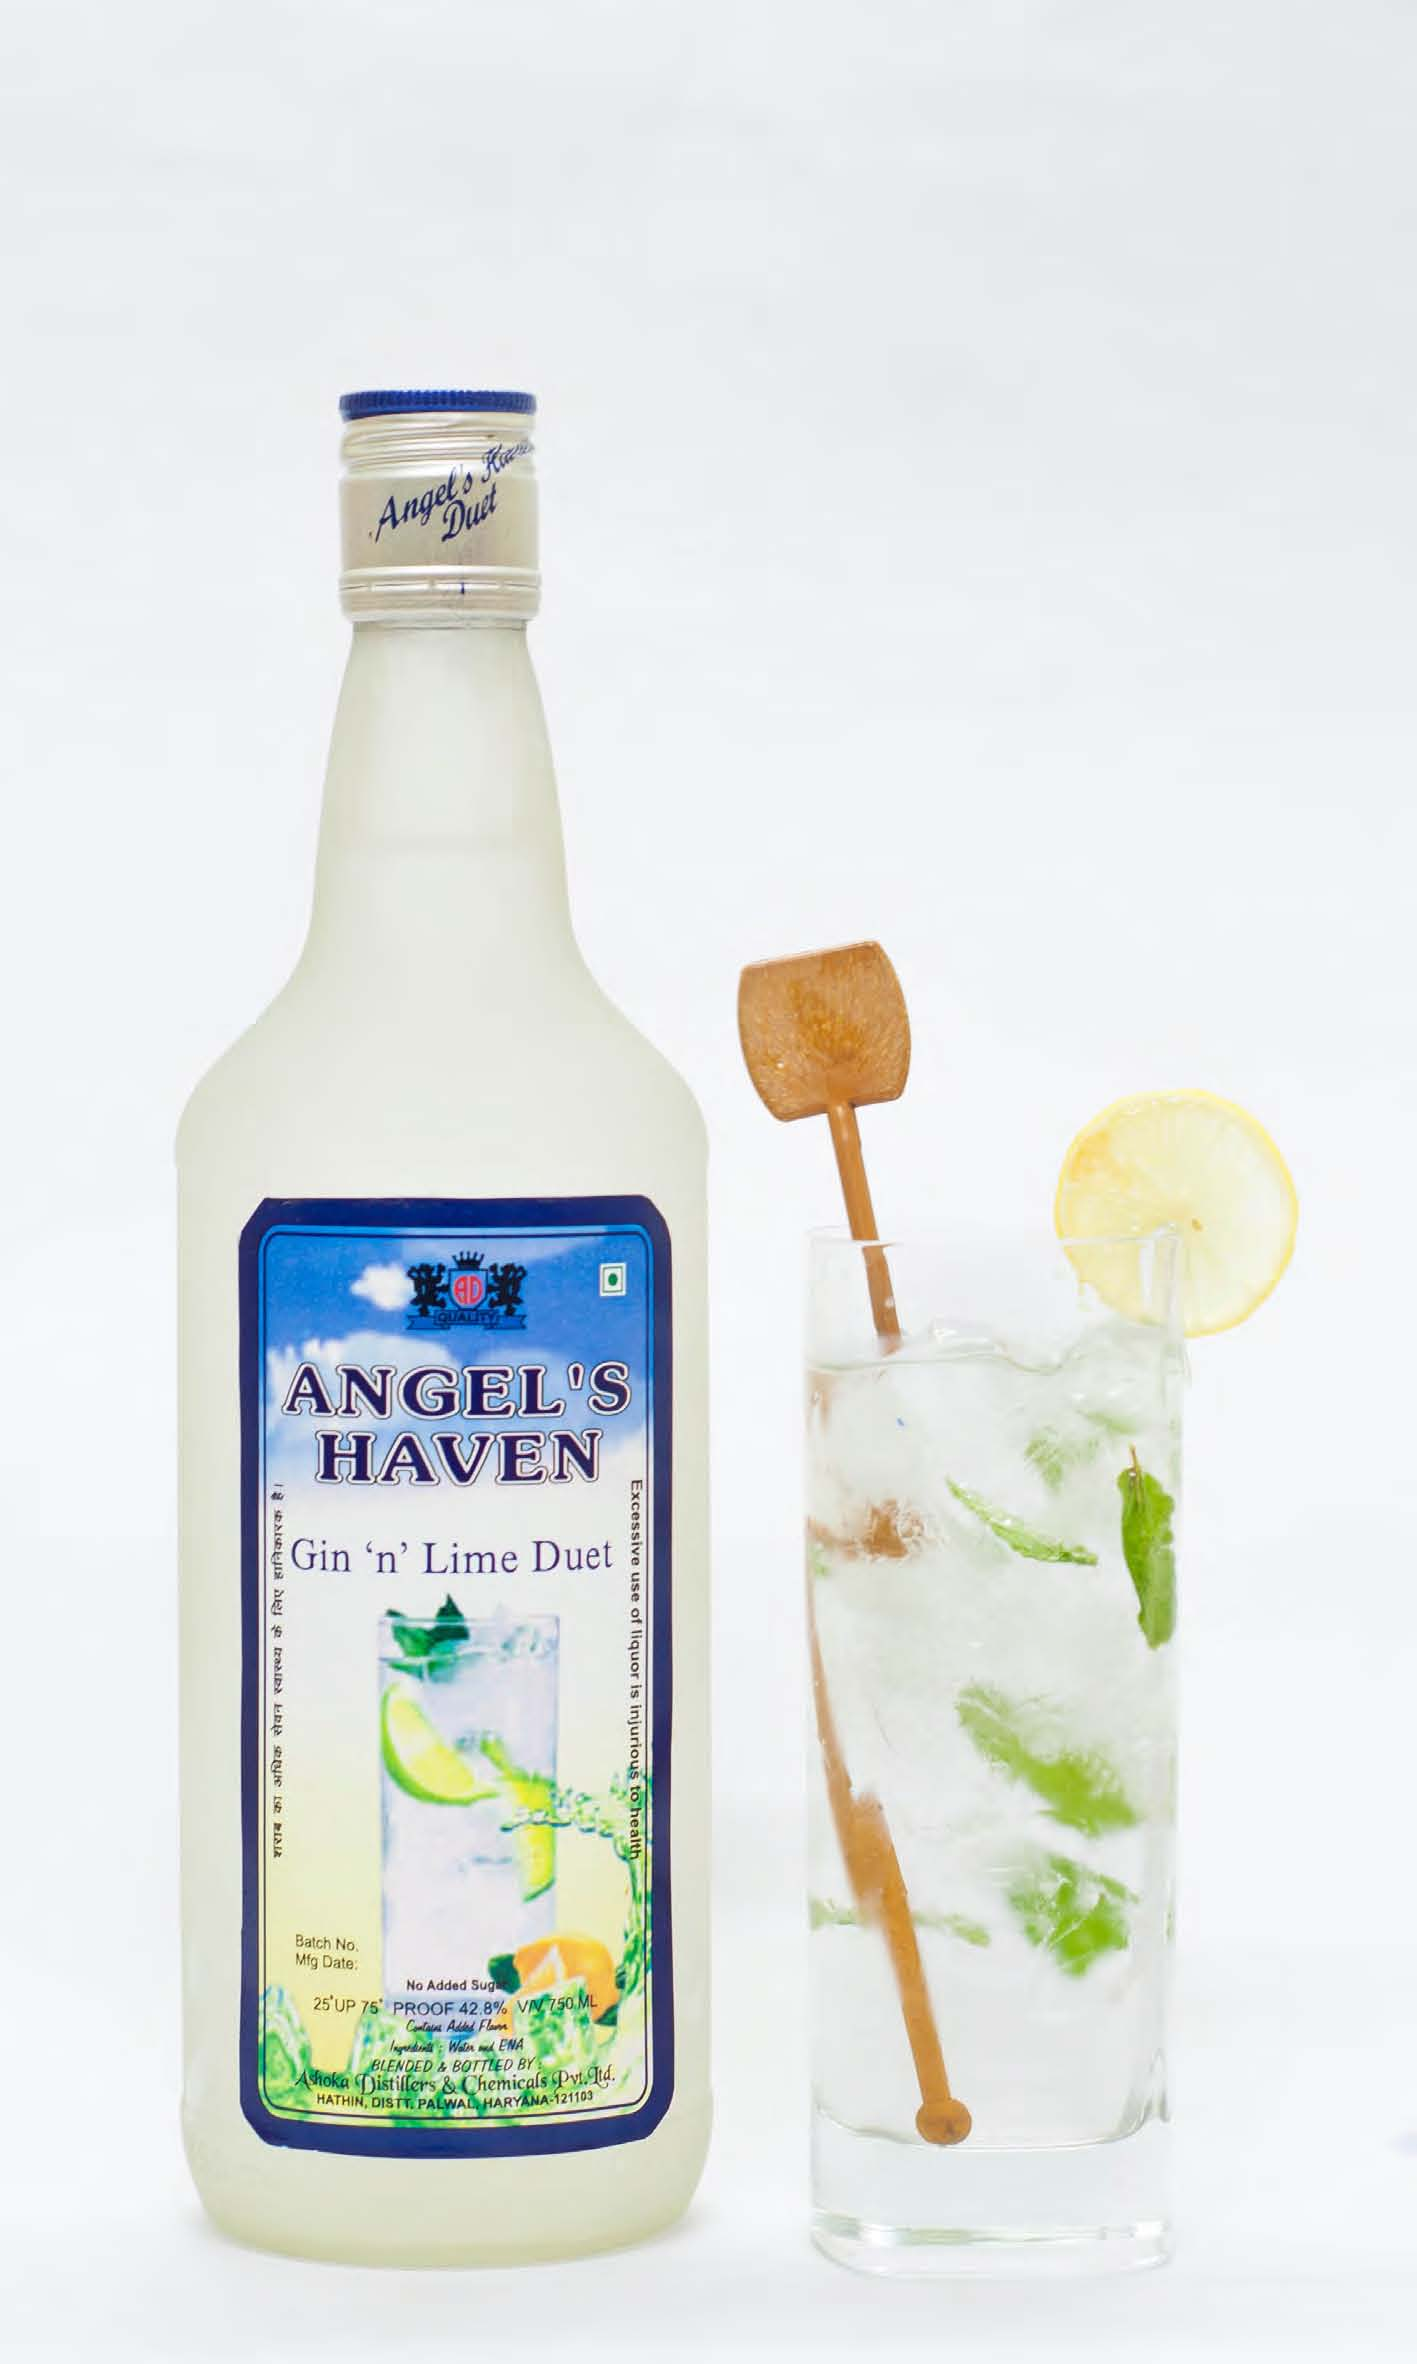 Angel's Haven Gin and Lime Duet